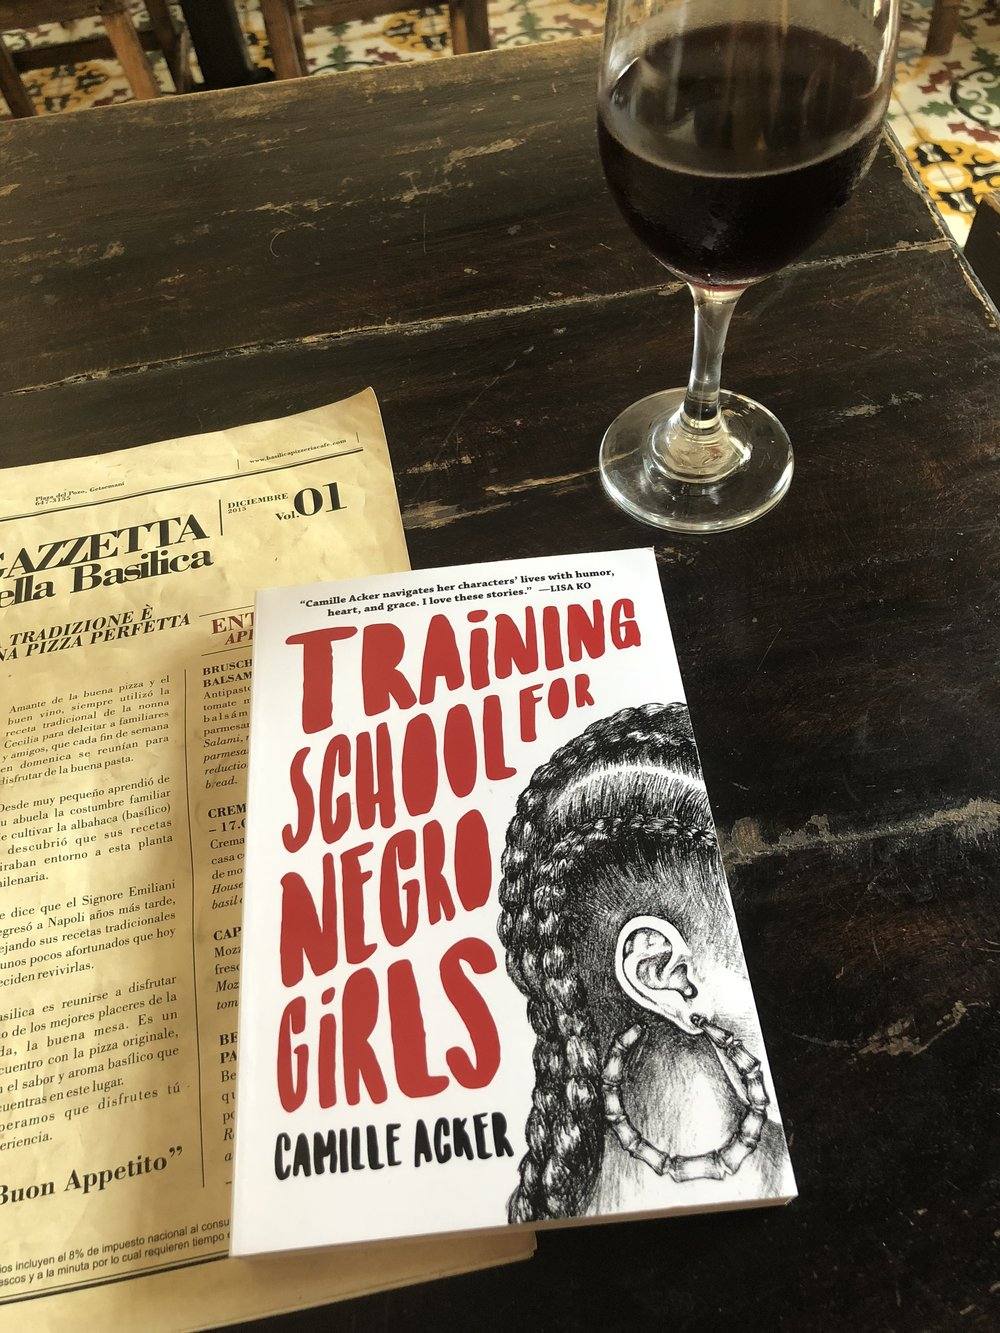 Training School for Negro Girls by Camille Acker was my other vacation read. Loved this one.